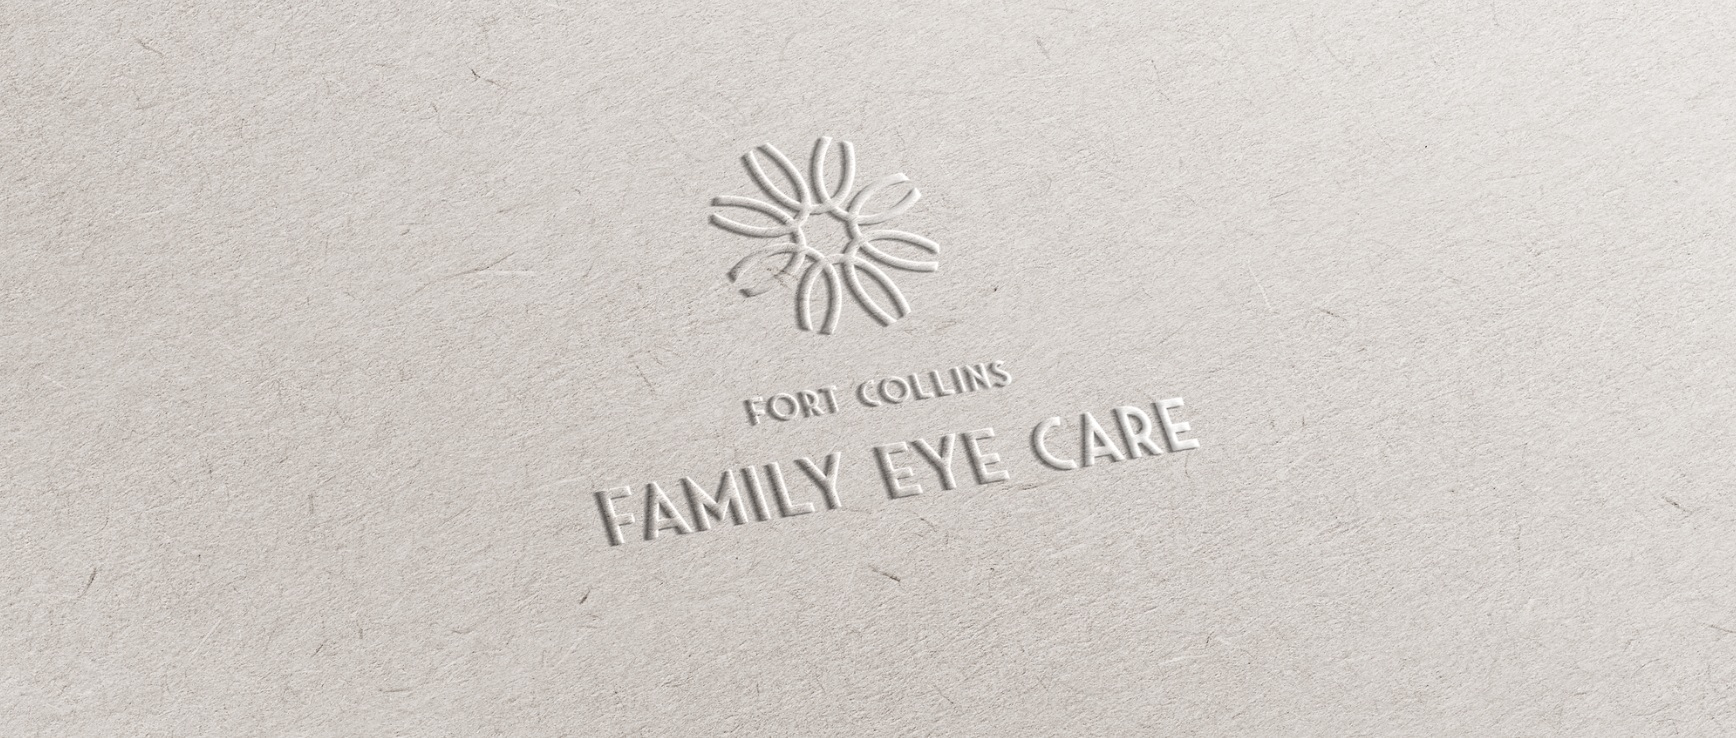 Main Image for Fort Collins Family Eye Care